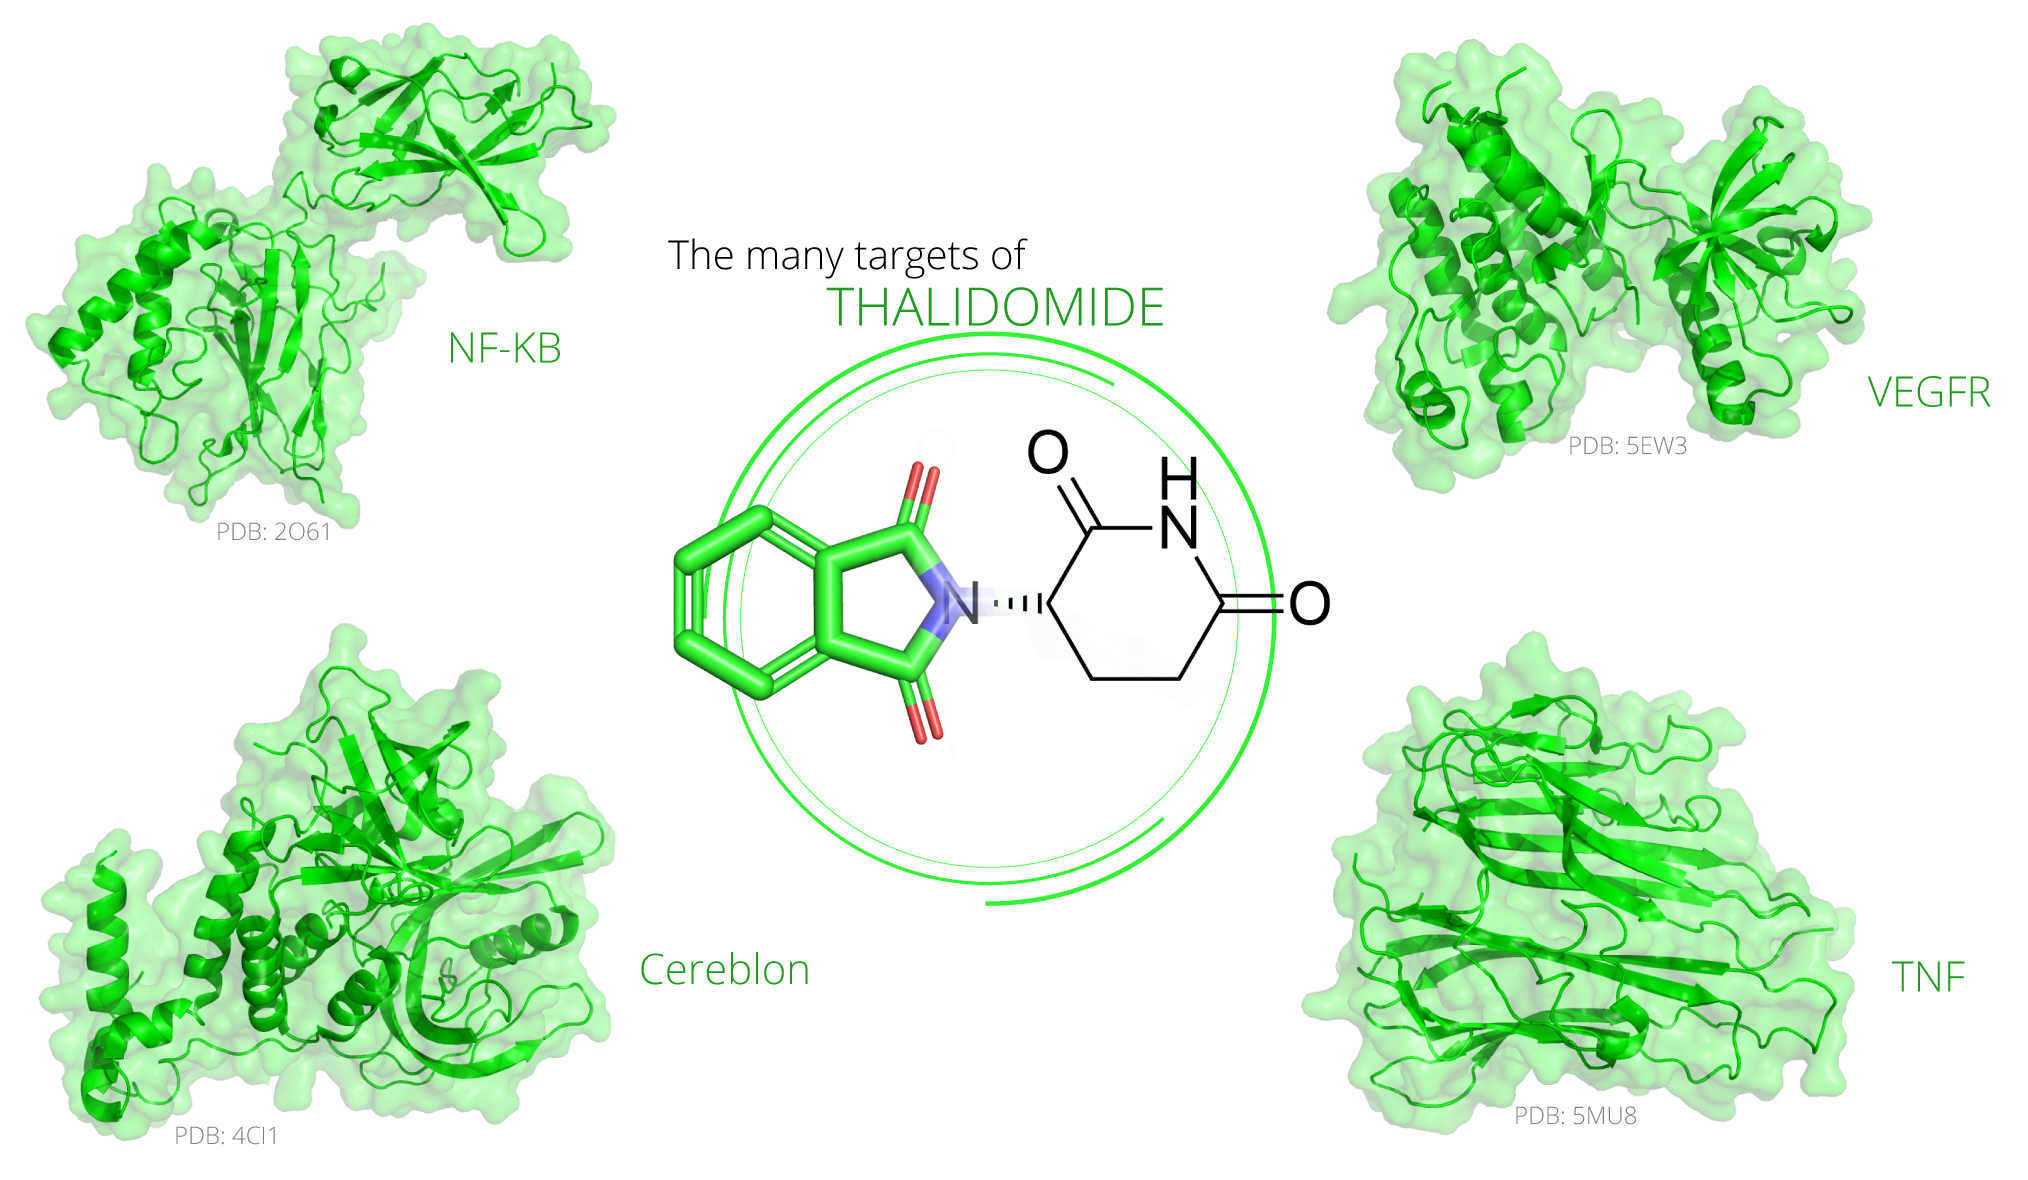 Figure 1.  Thalidomide acts on several proteins through direct binding or on pathway. Relevant drug targets include NF-κB, Cereblon, VEGFR, and TNF-α.